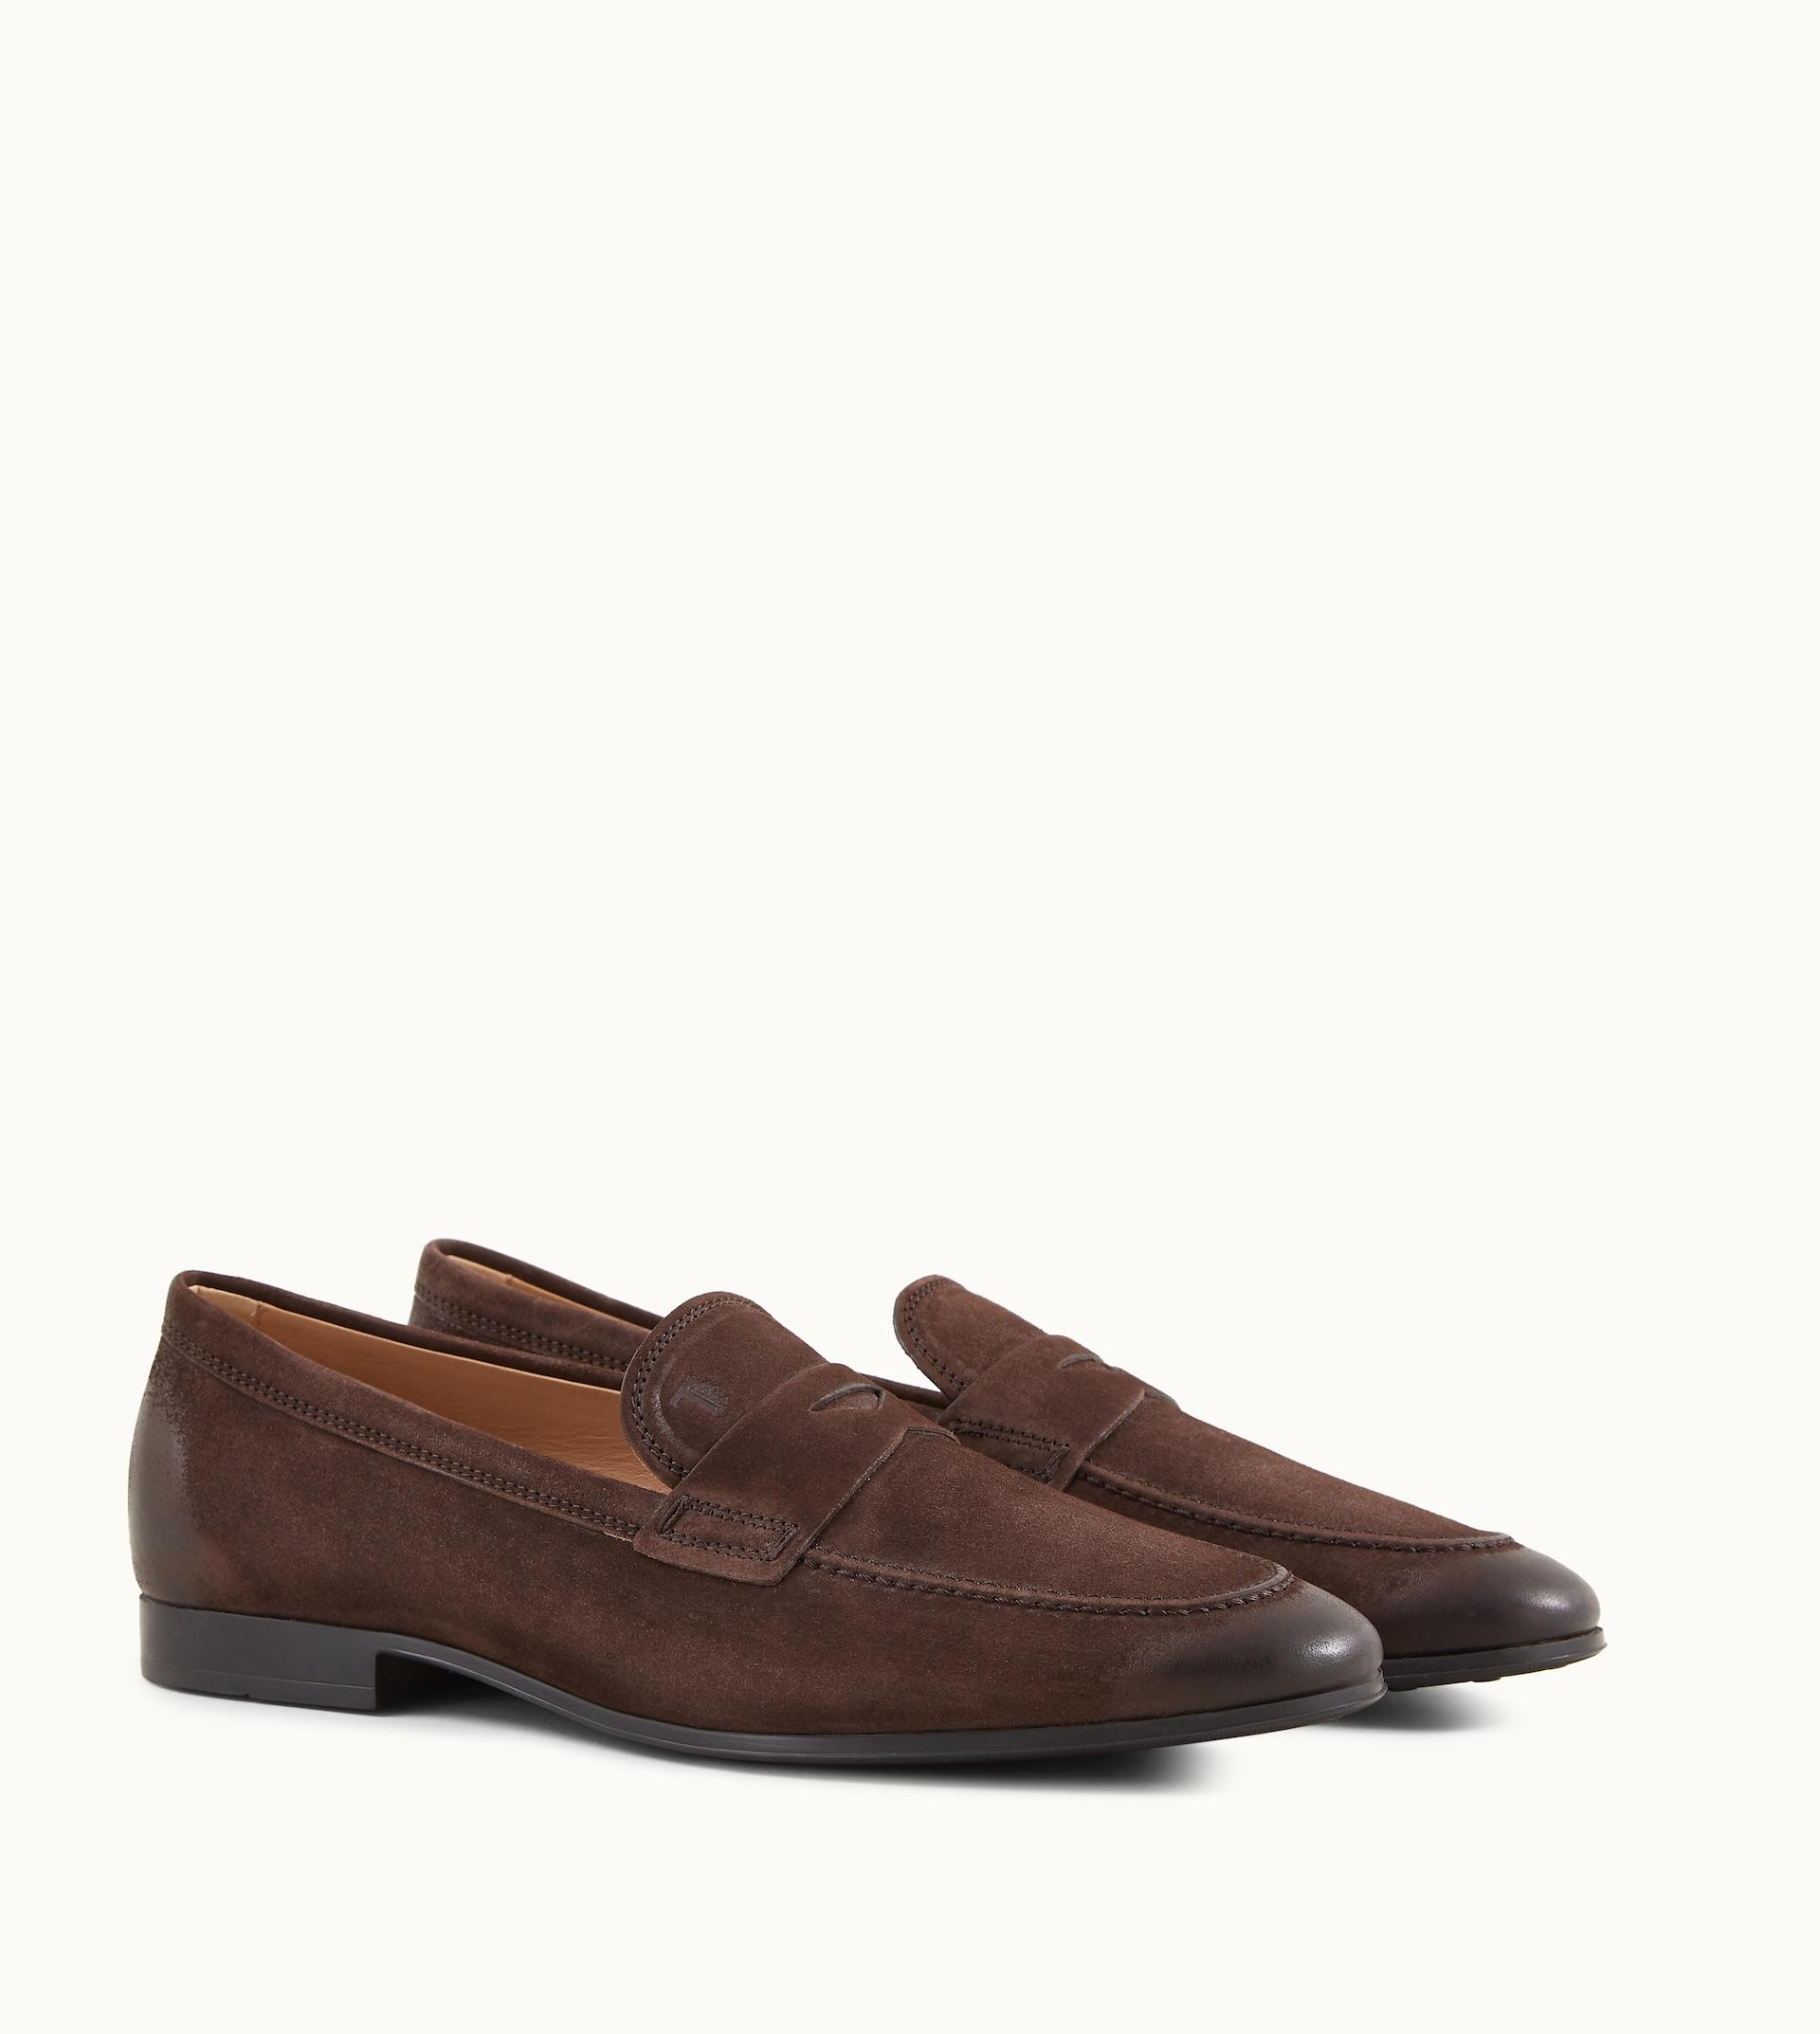 Tod's Loafers In Suede in Brown for Men